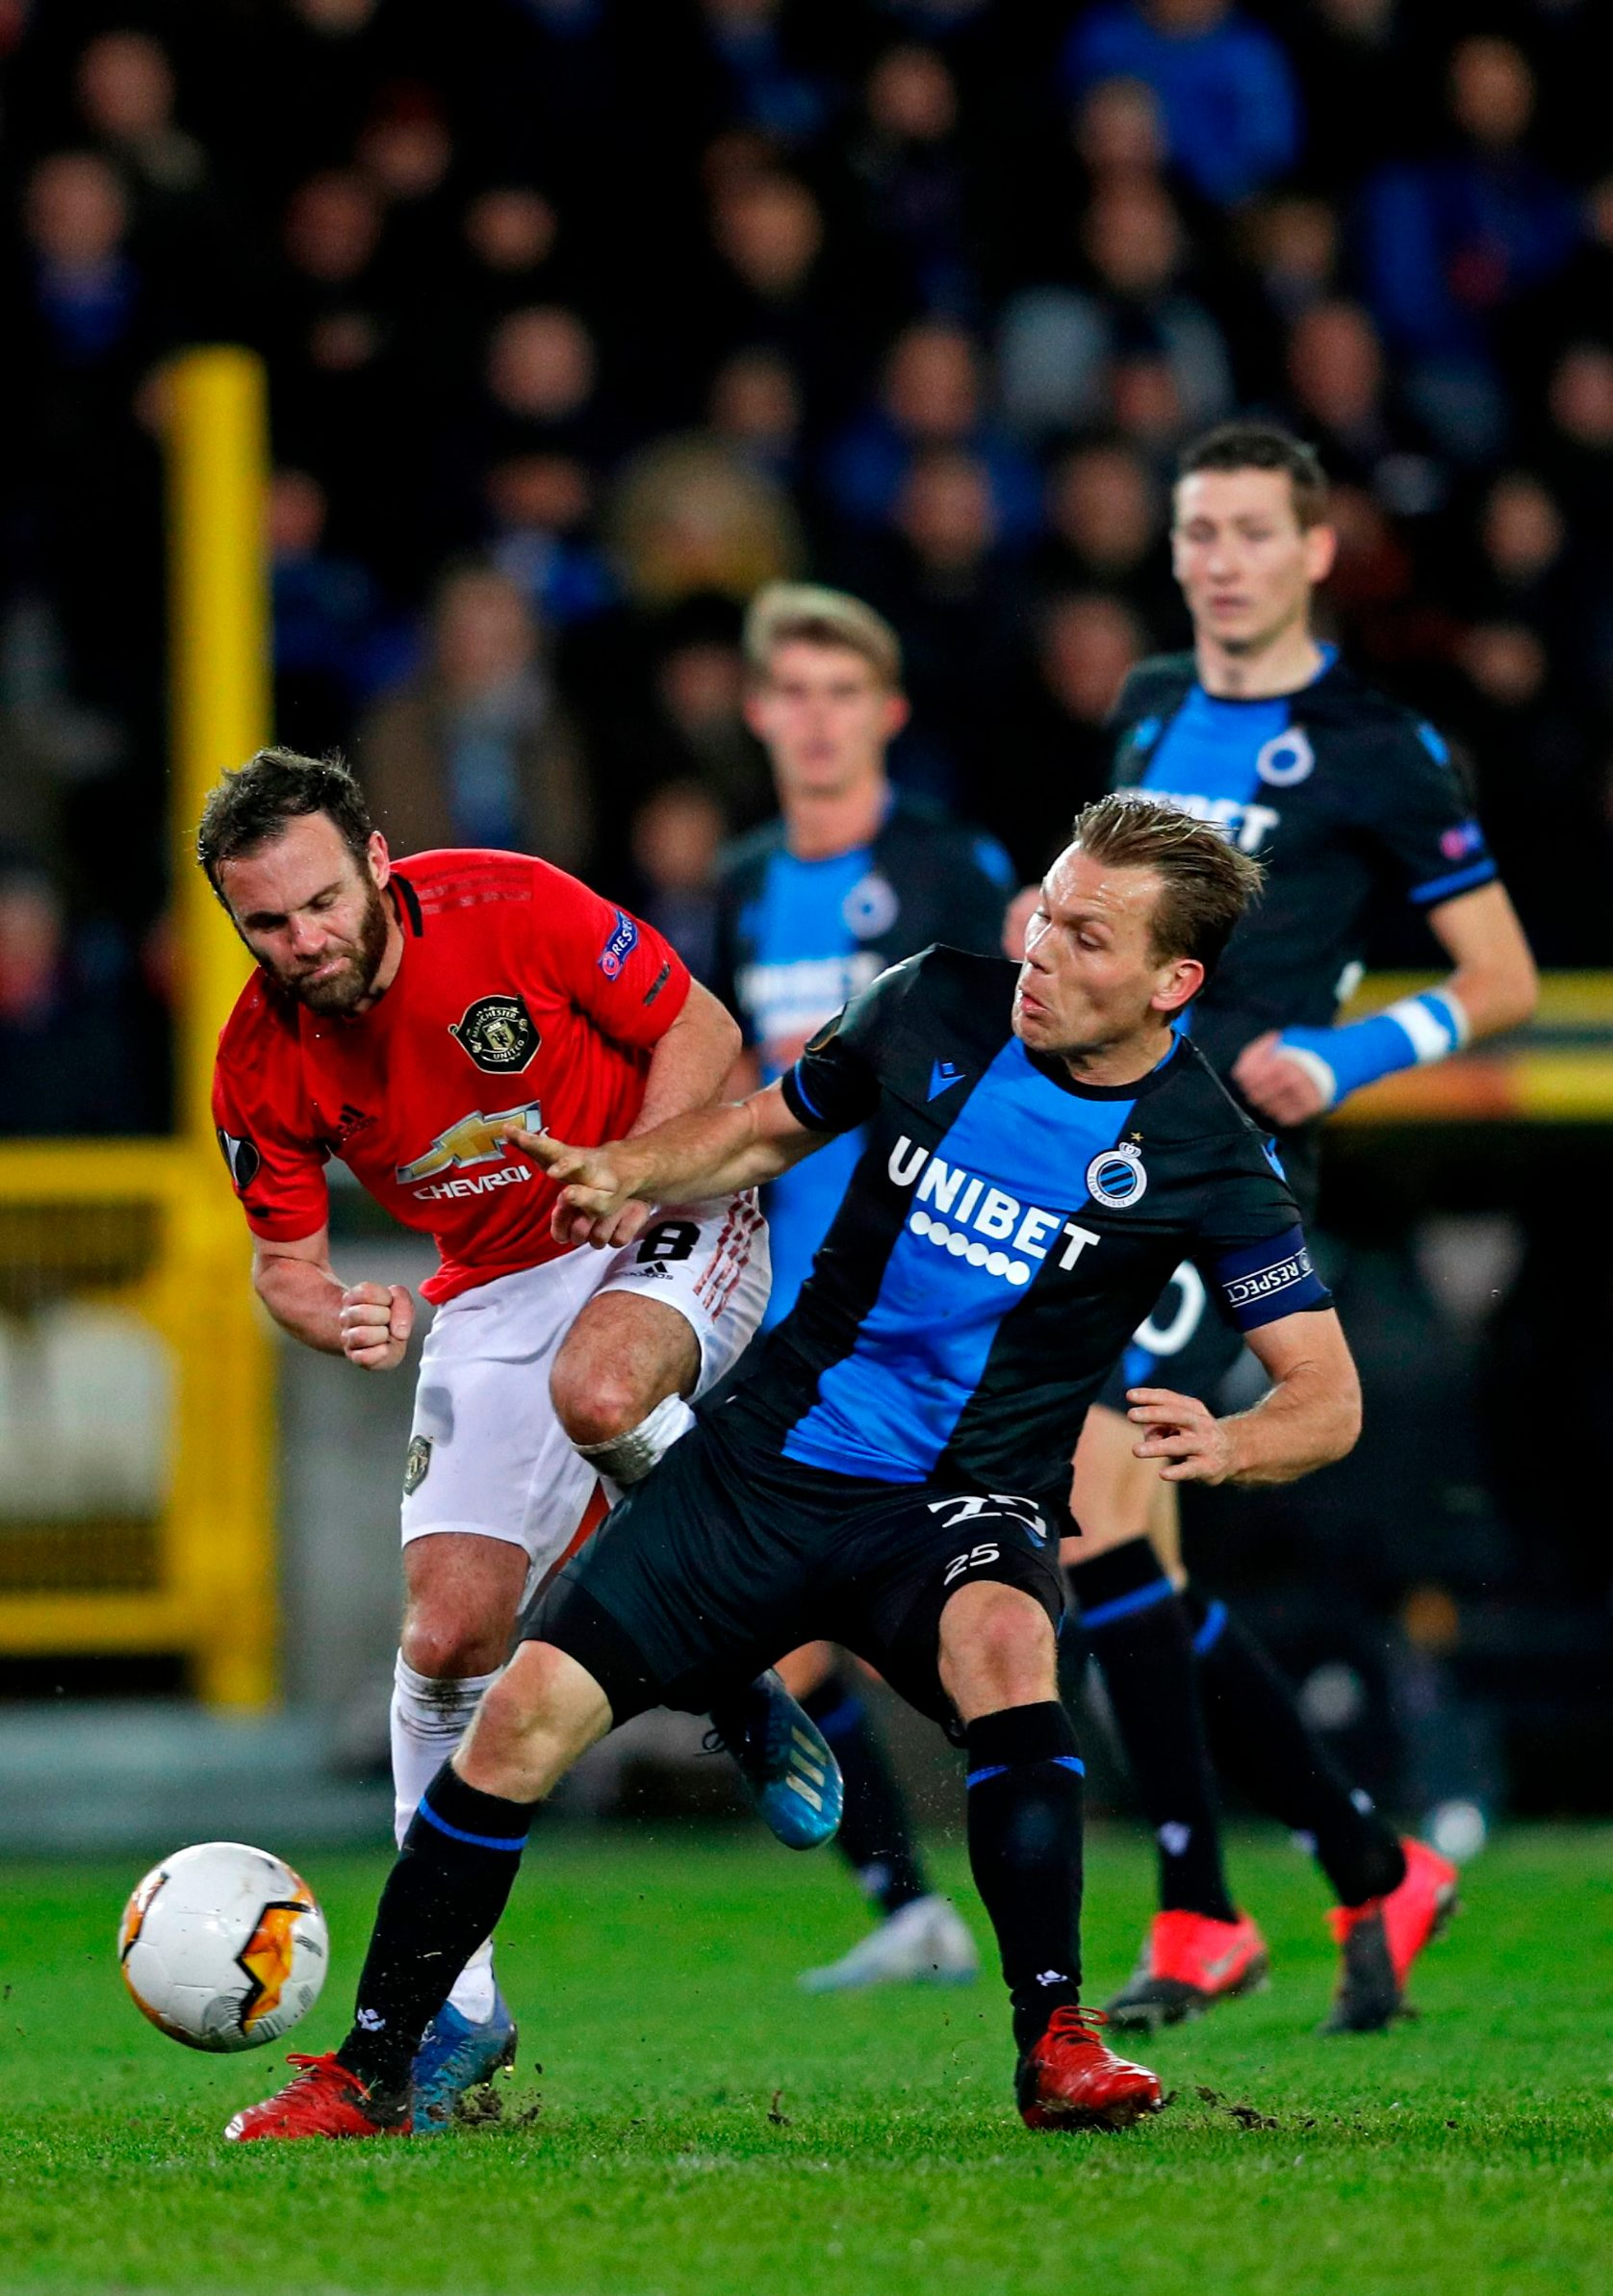 Manchester United's Spanish midfielder Juan Mata ( L) fights for the ball with Club Brugge's Ruud Vormer, during the Europa League match between Club Brugge and Manchester United at the Jan Breydel Stadium in Bruges on February 20, 2020. (Photo by ADRIAN DENNIS / AFP)